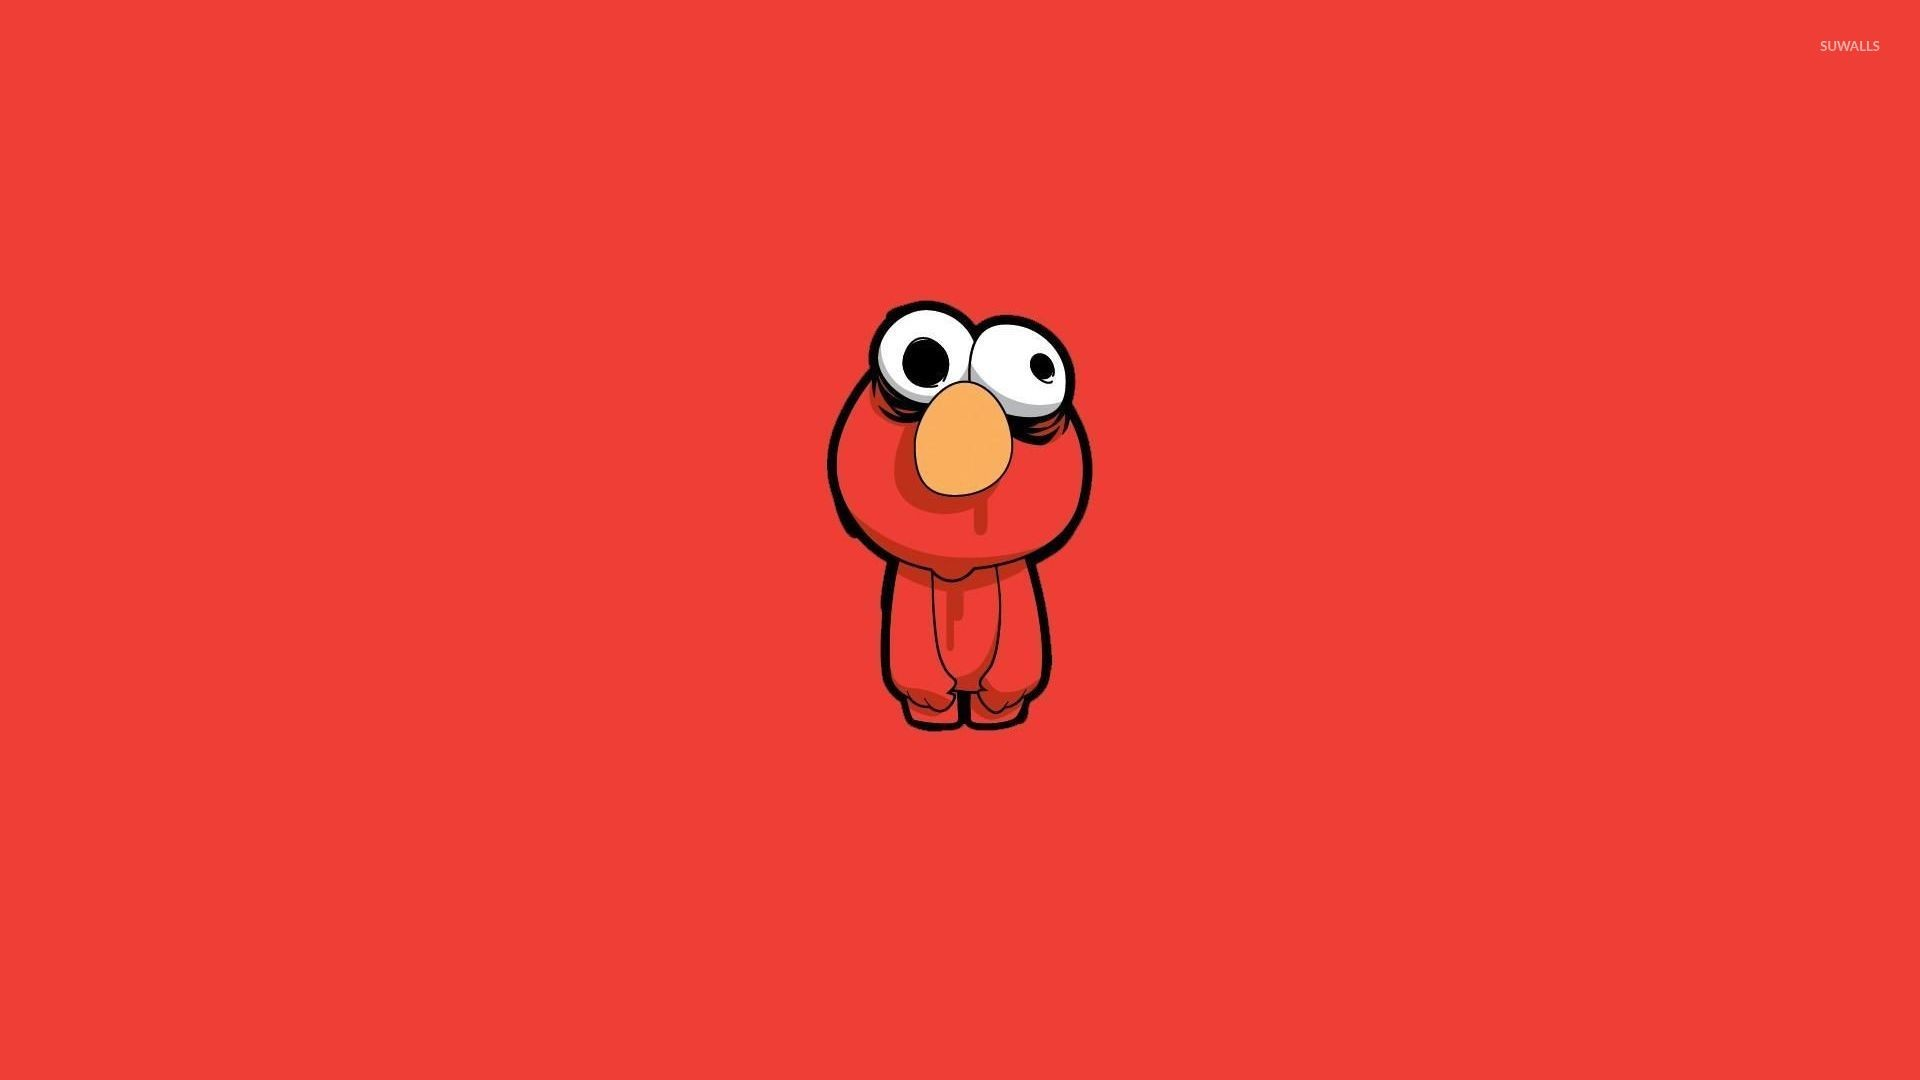 1920x1080 Zombie Elmo wallpaper - Funny wallpapers - #29496